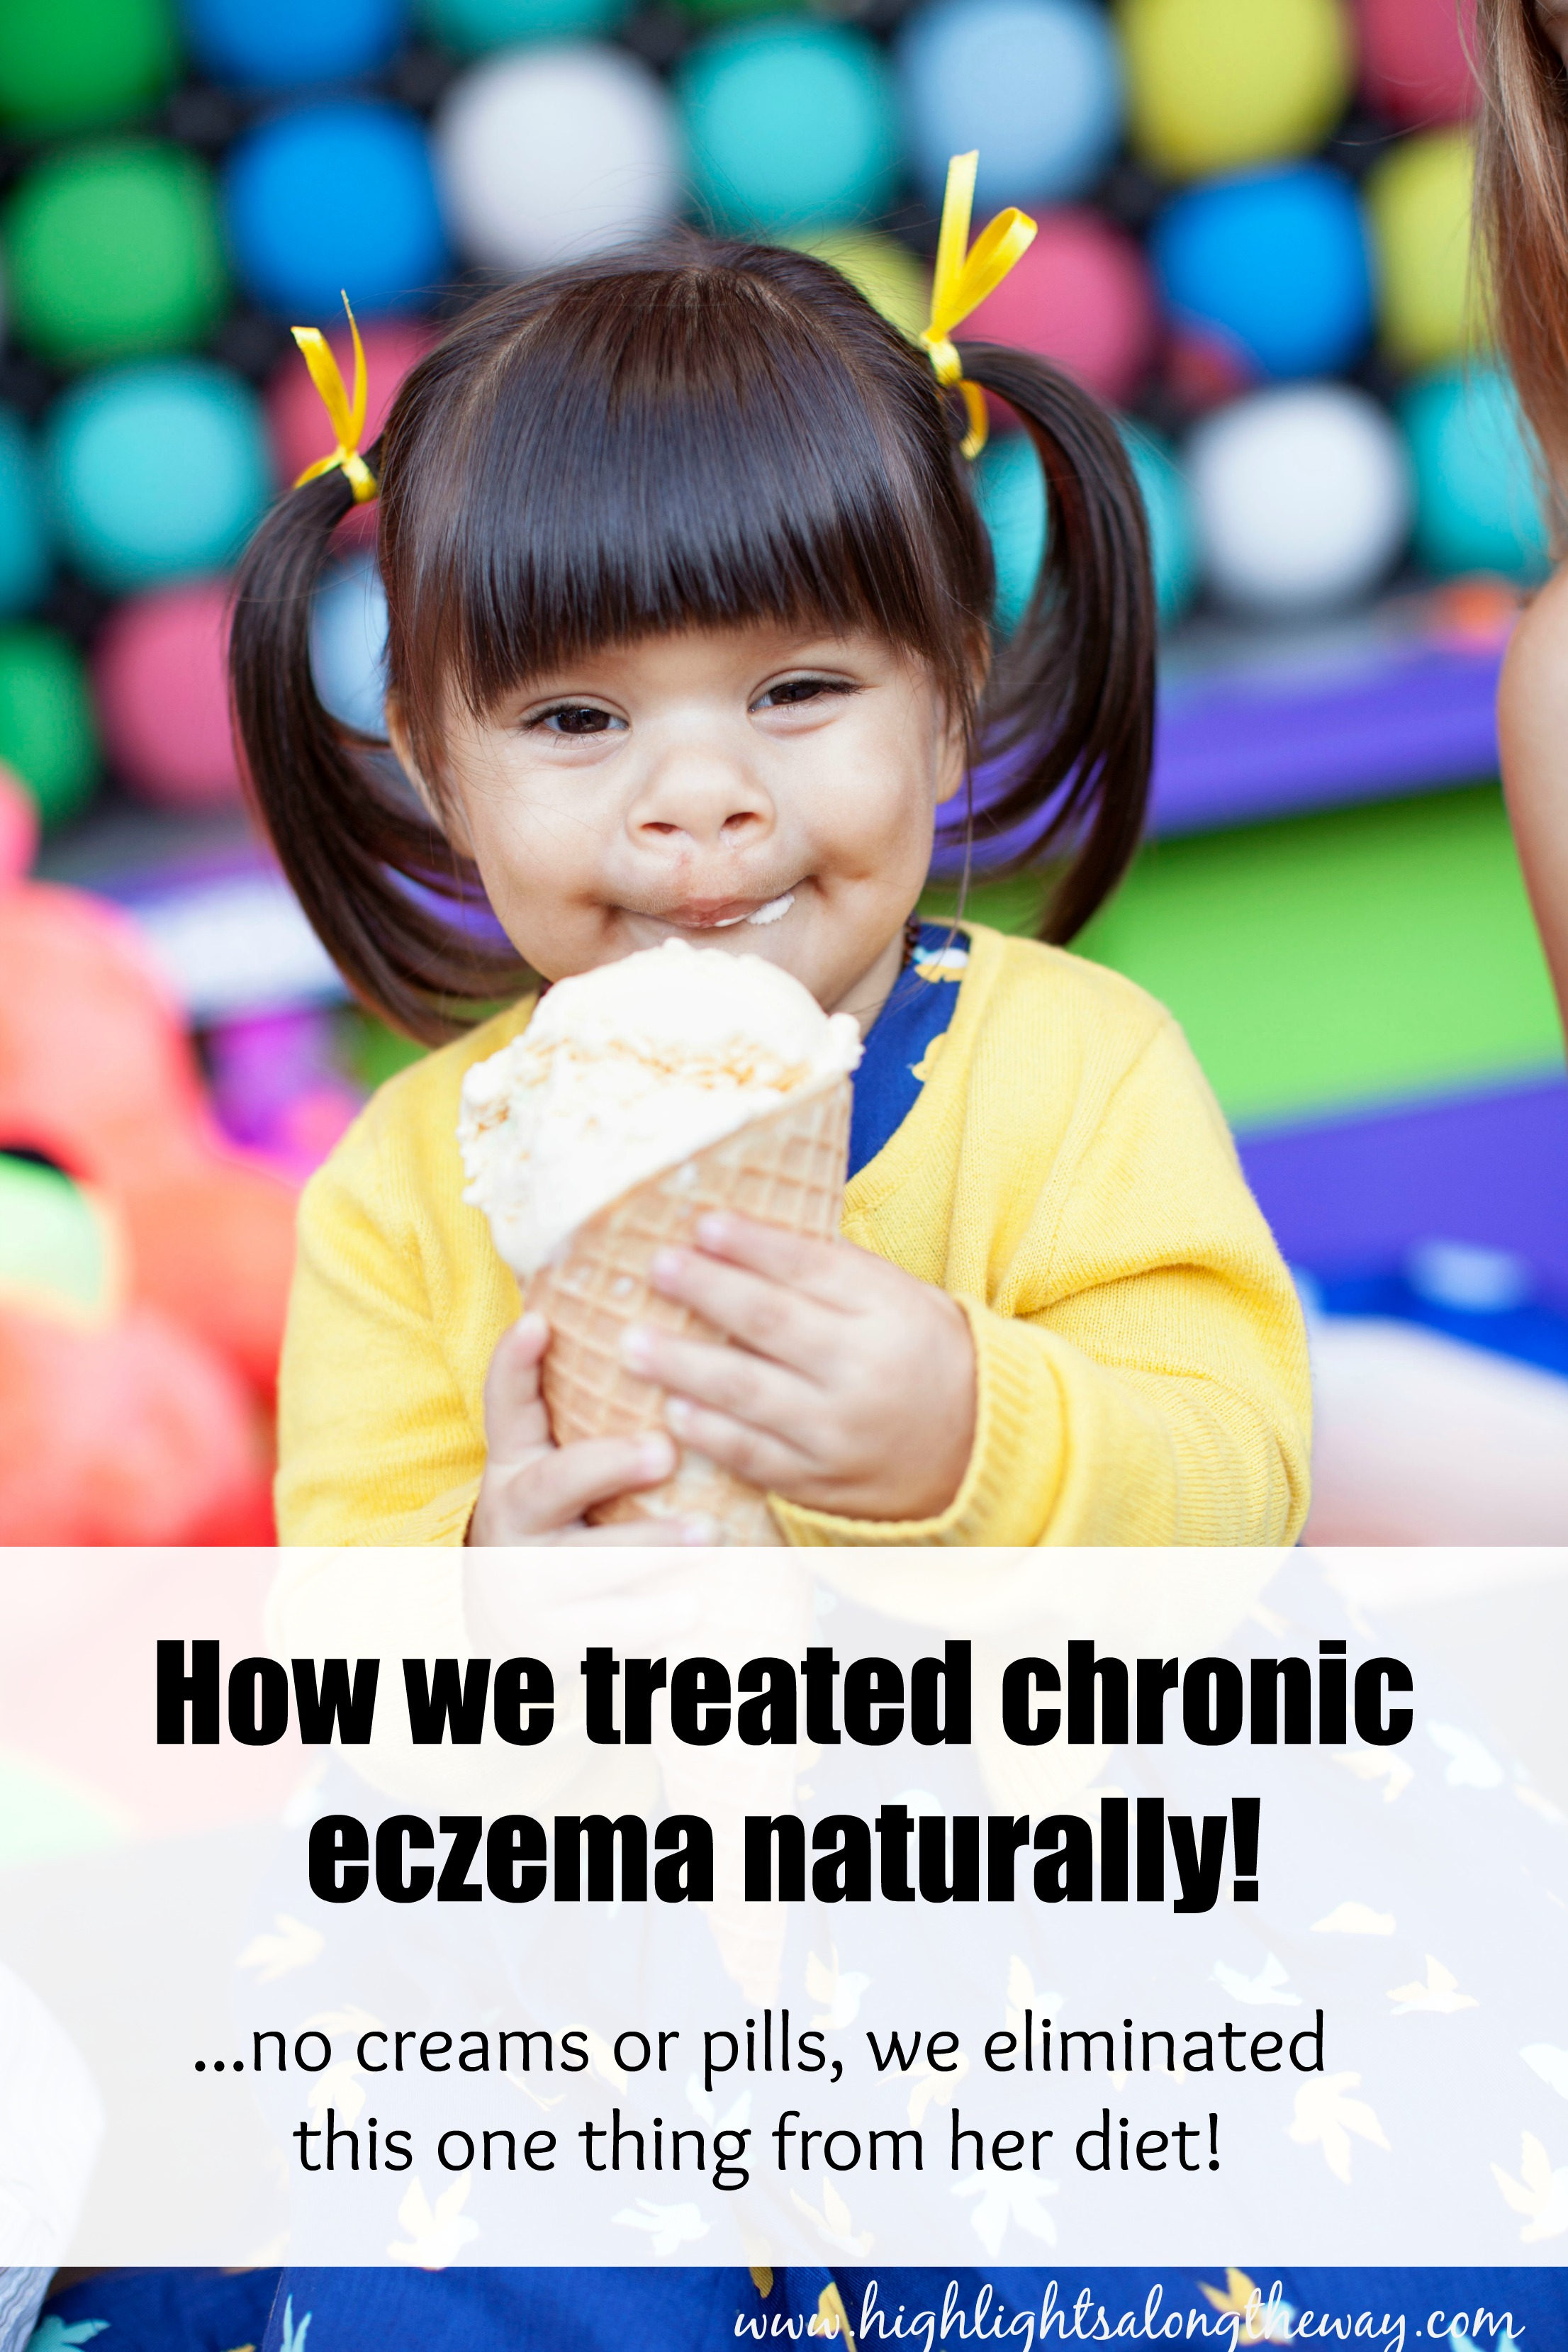 How we treat eczema naturally with diet modification